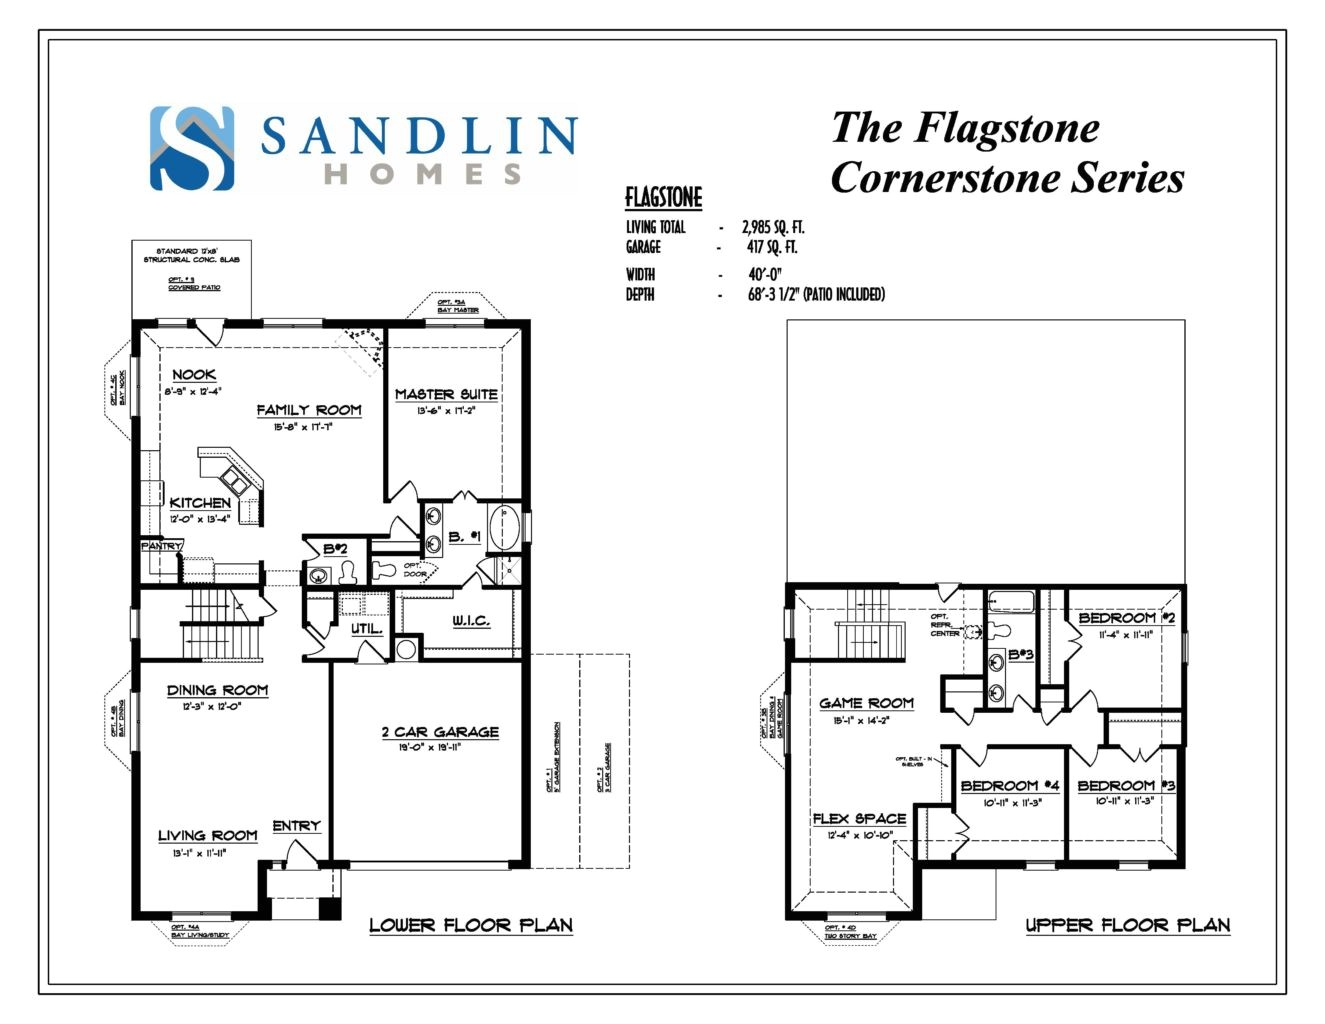 sandlin floorplans flagstone